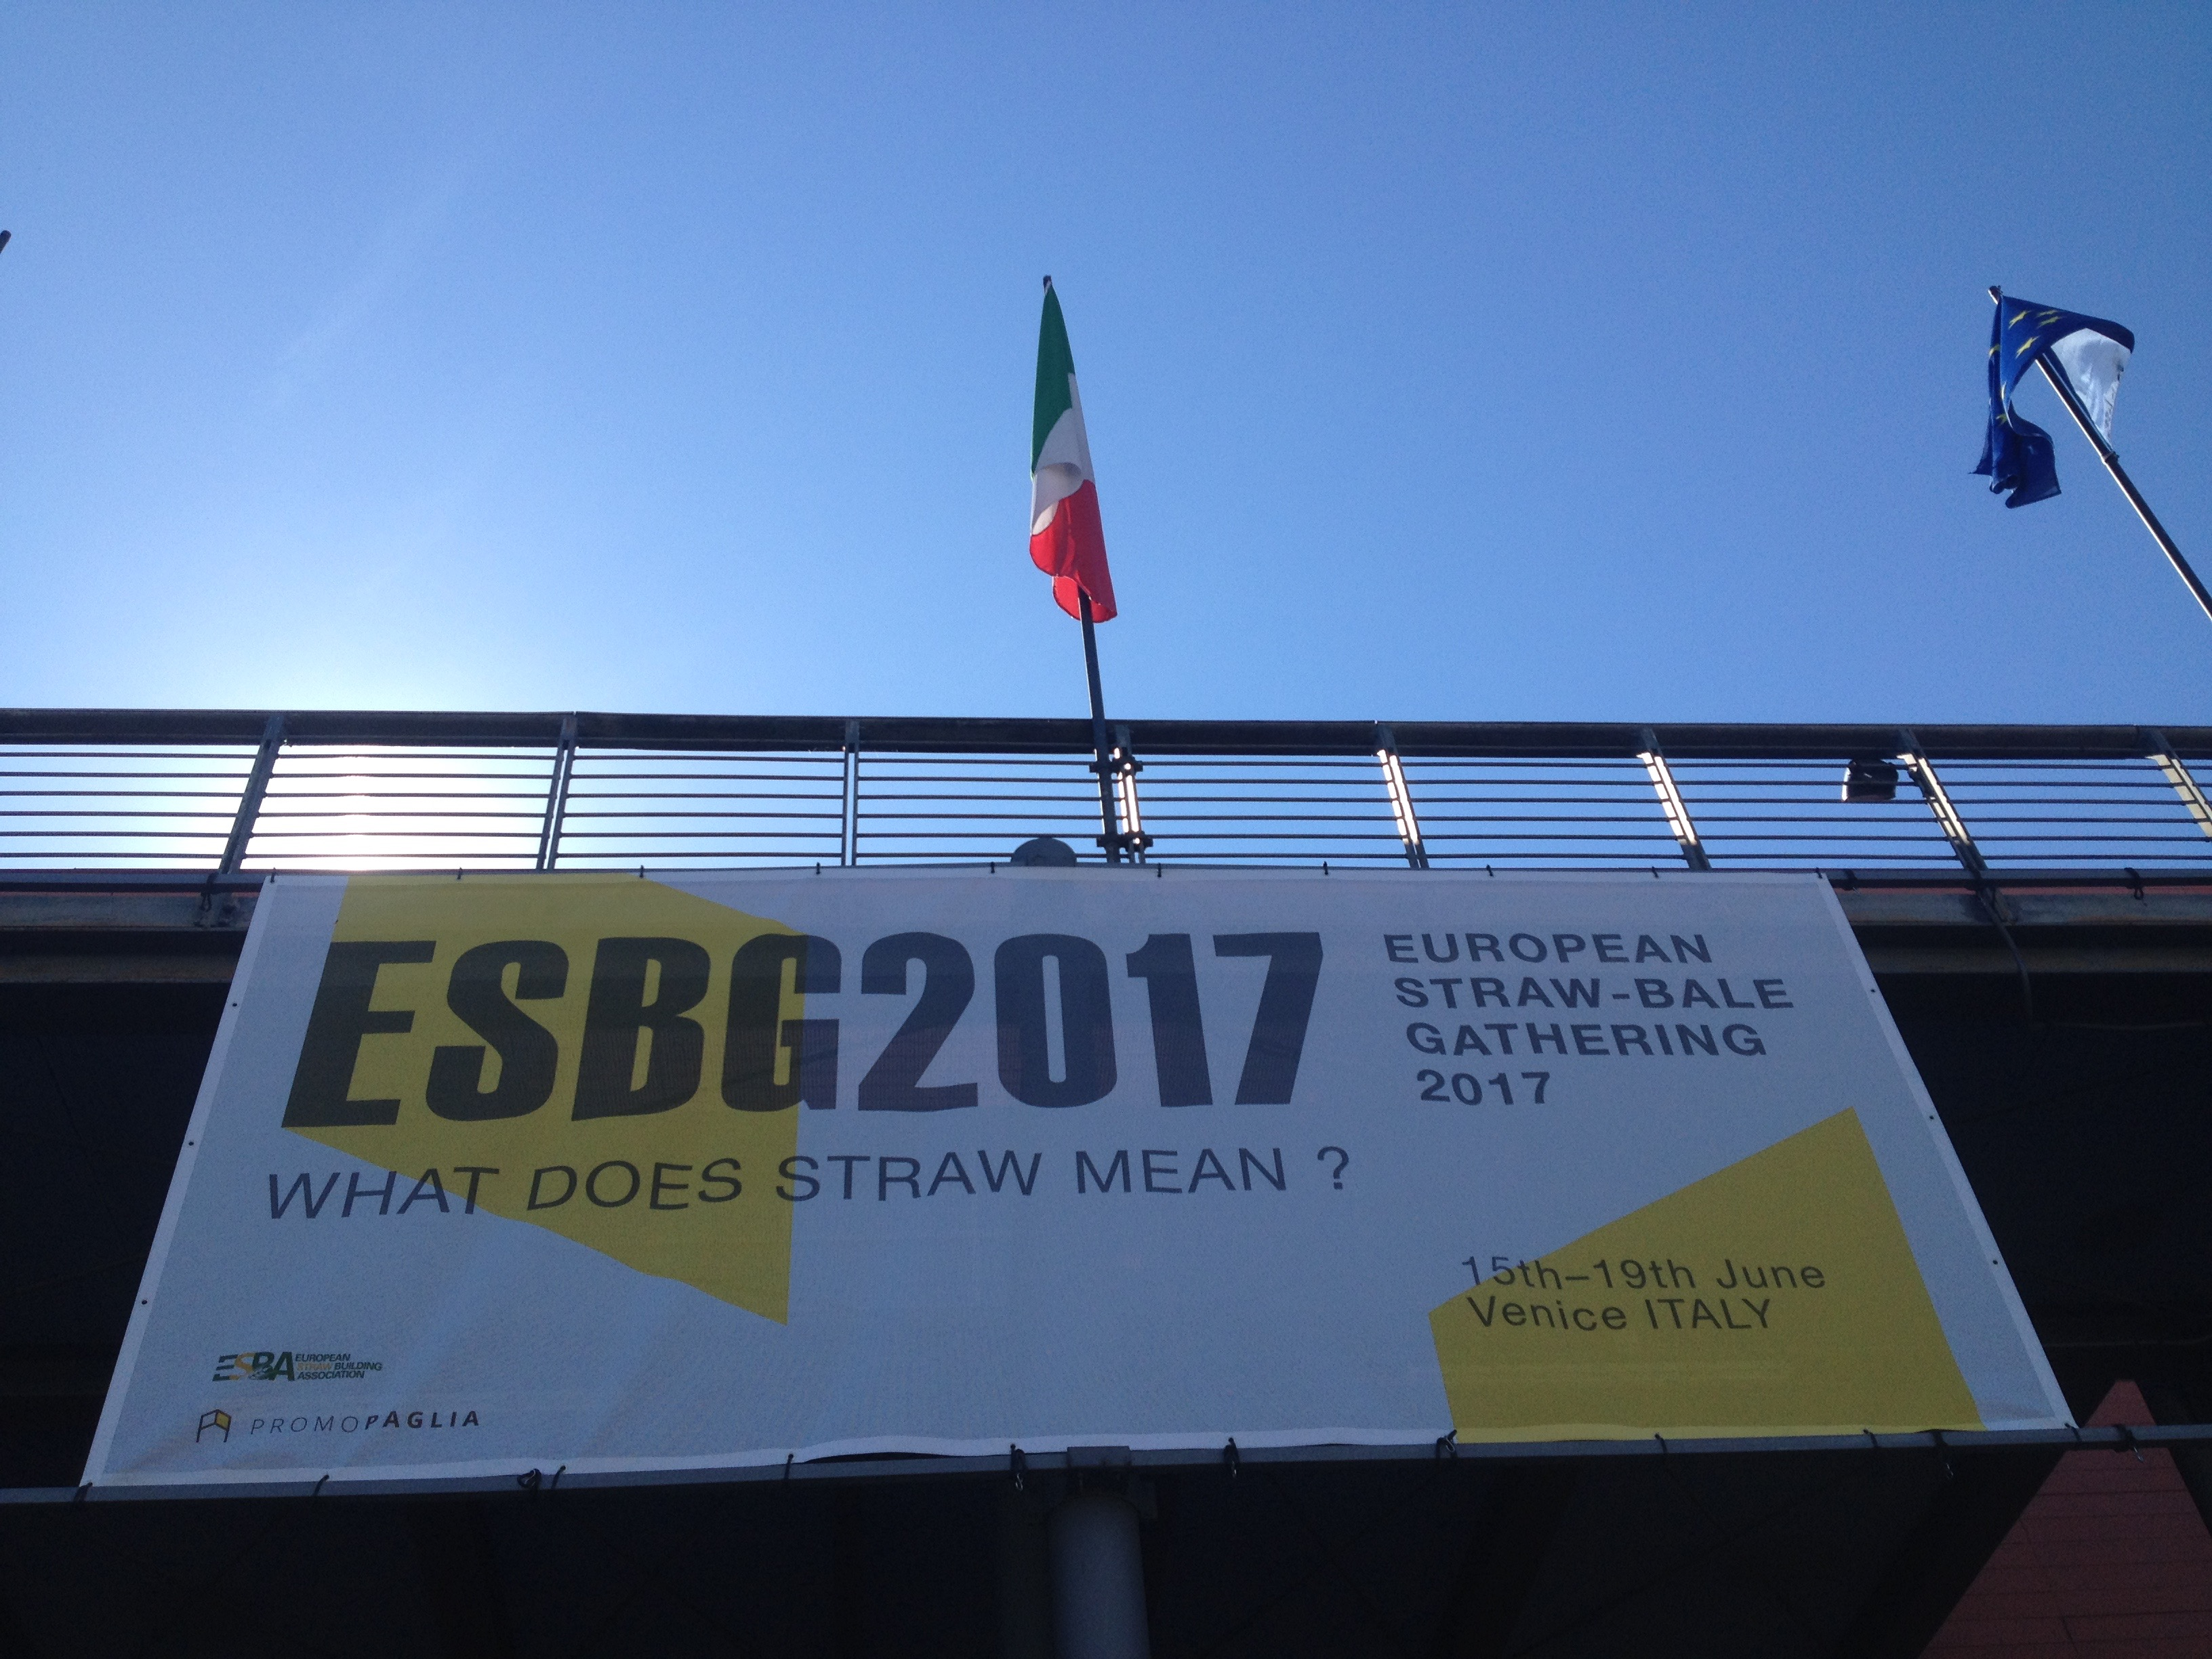 Workshop HOW TO – ESBG 2017